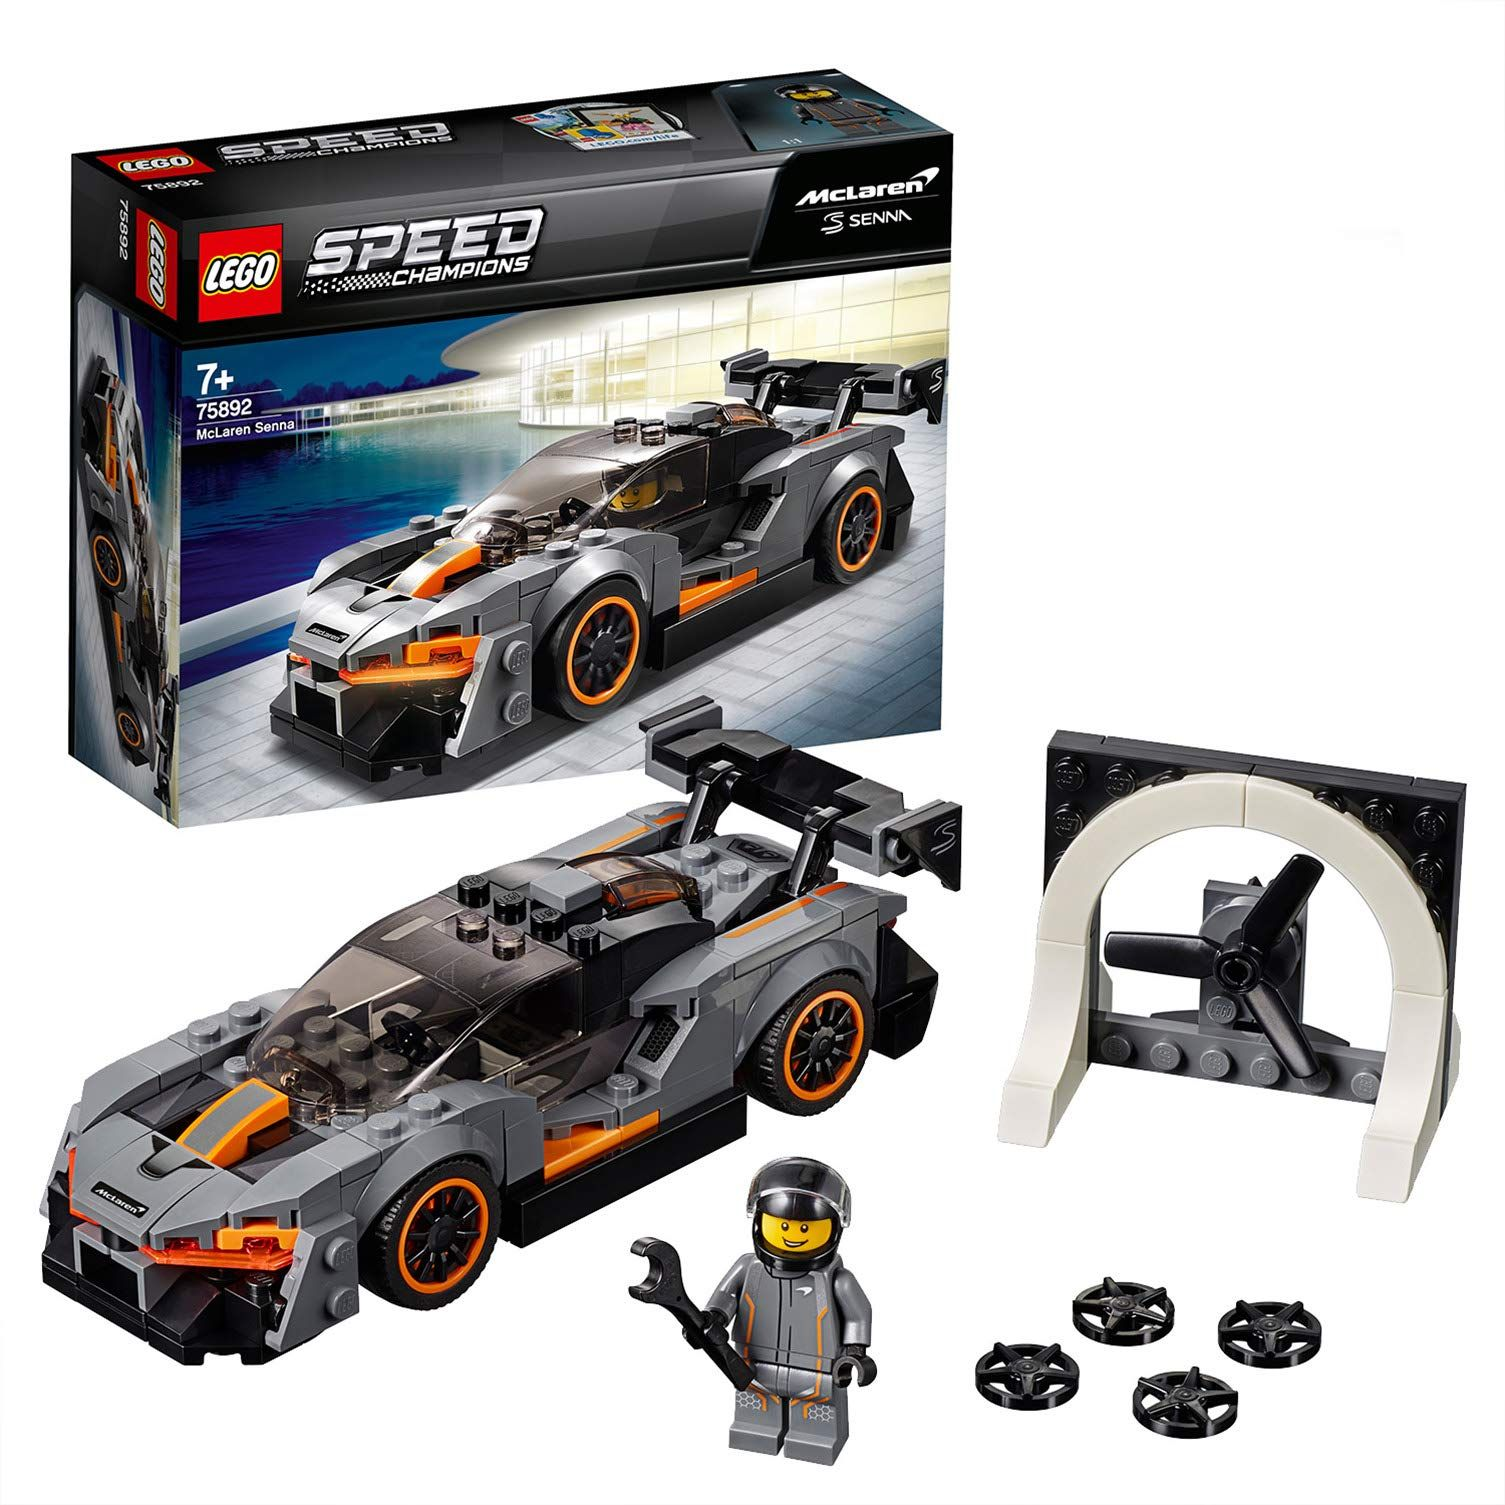 Shop Lego speed champions, Toy cars for kids, Toy car